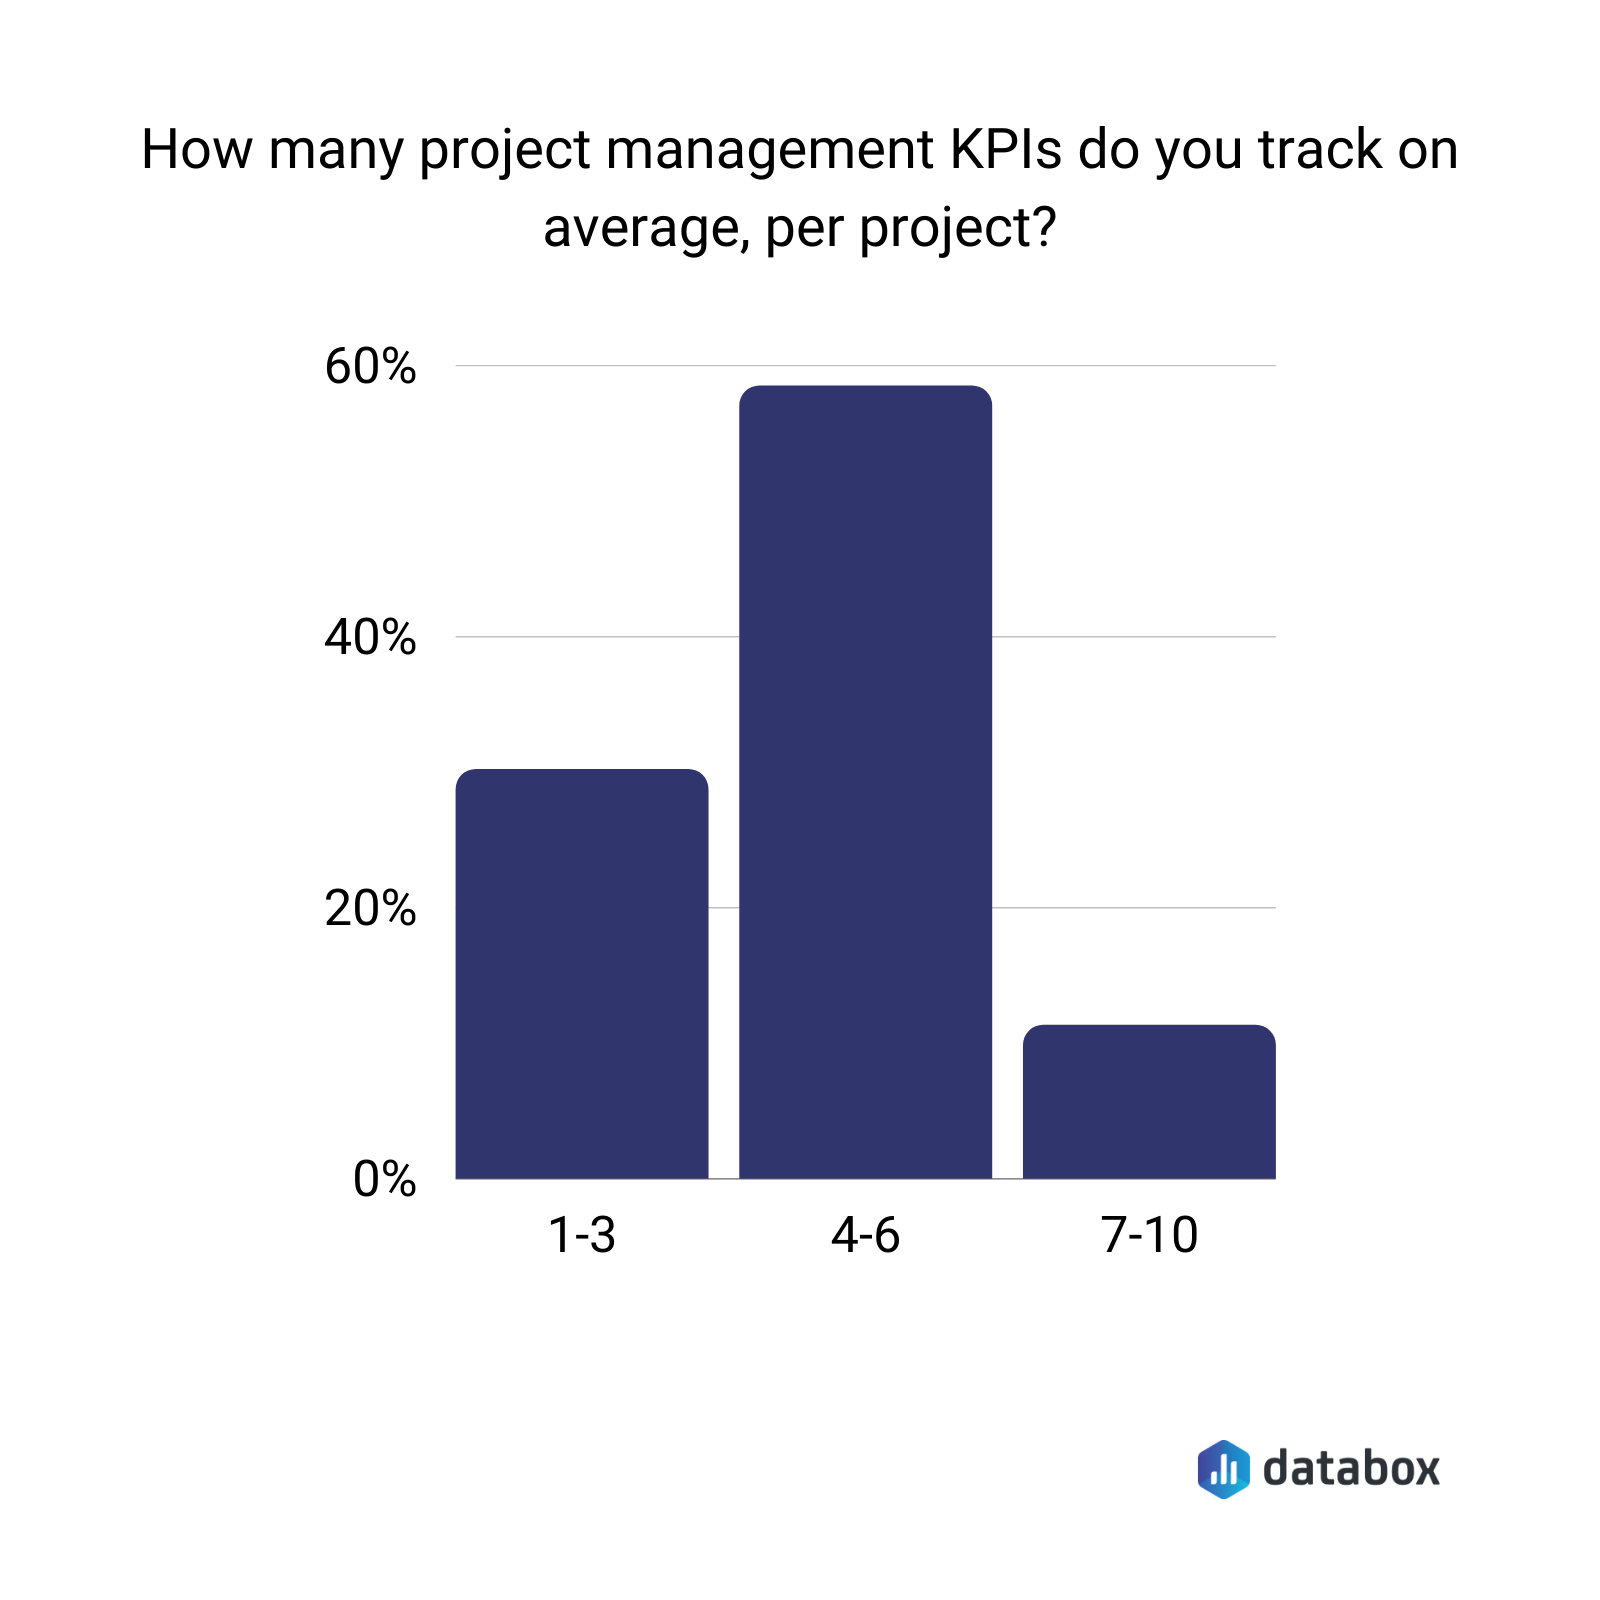 how many project management kpis do you track on average per project